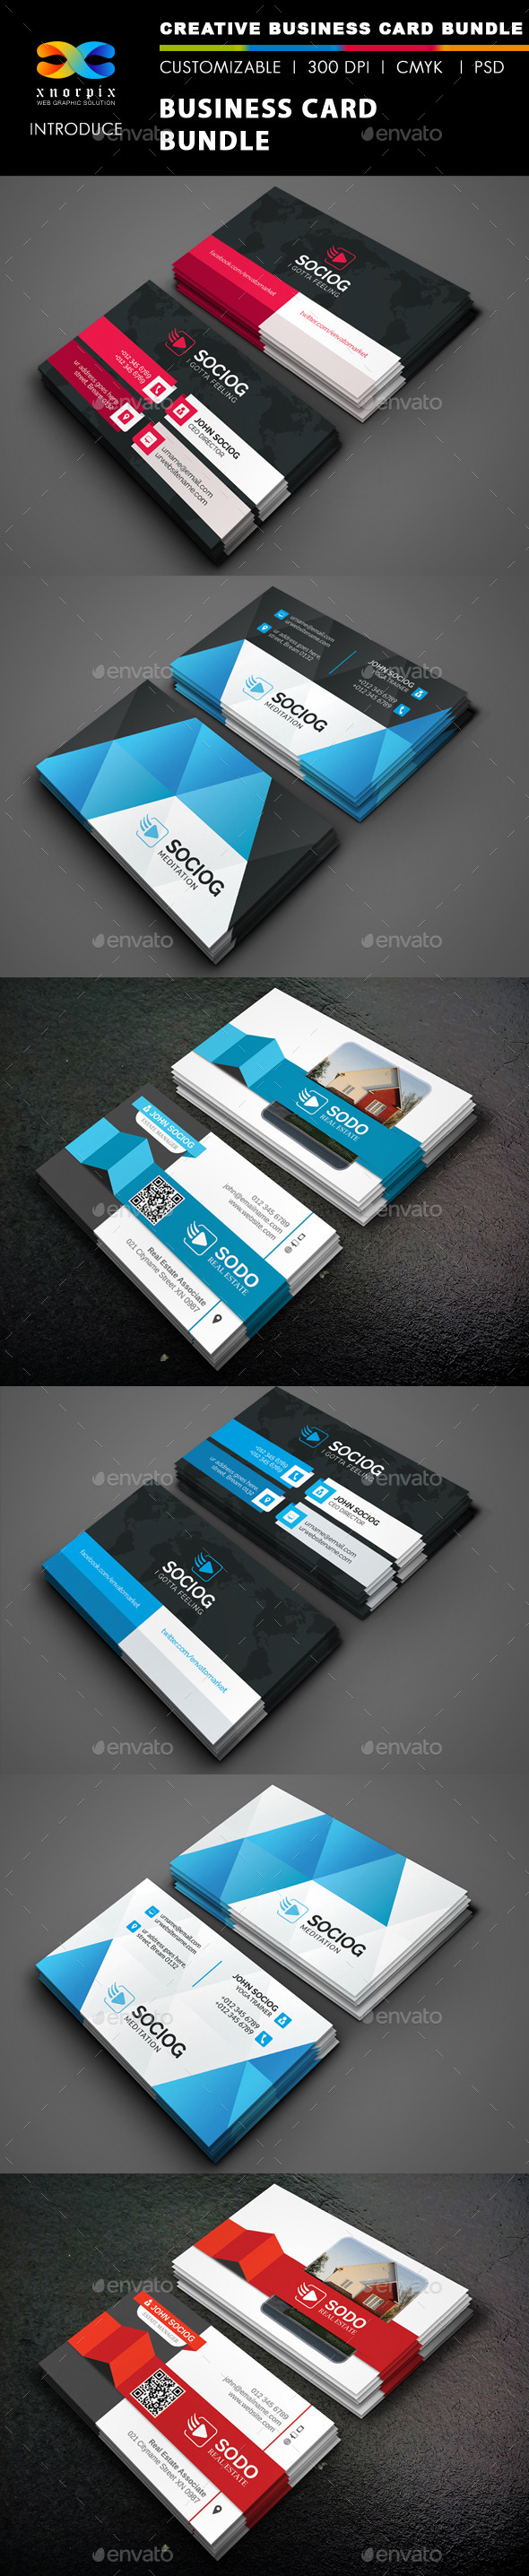 GraphicRiver Business Card Bundle 3 in 1-Vol 43 9053849